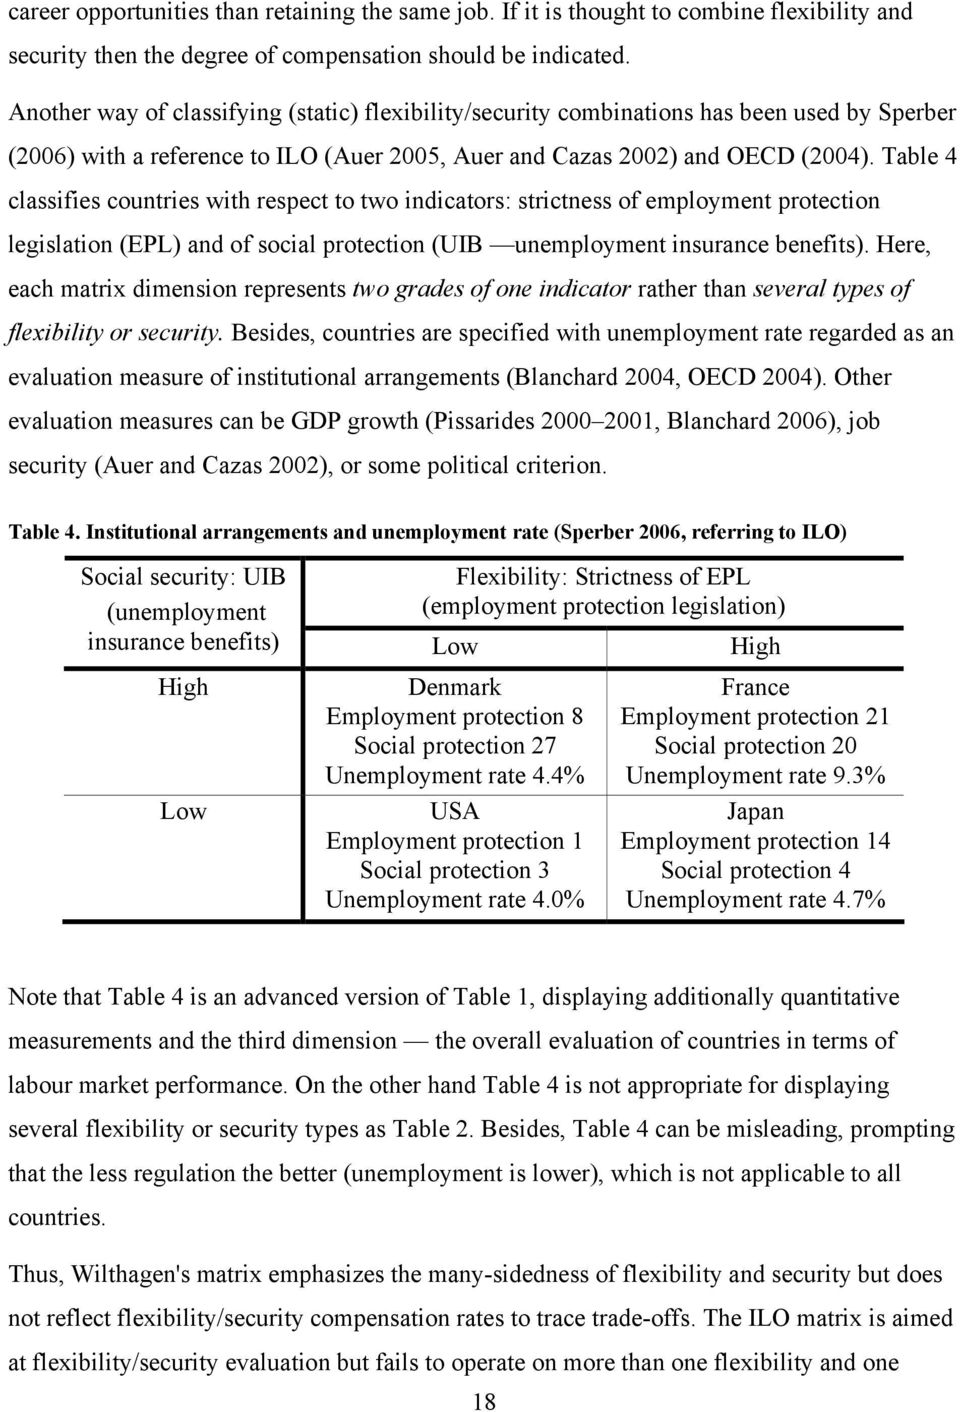 Table 4 classifies countries with respect to two indicators: strictness of employment protection legislation (EPL) and of social protection (UIB unemployment insurance benefits).